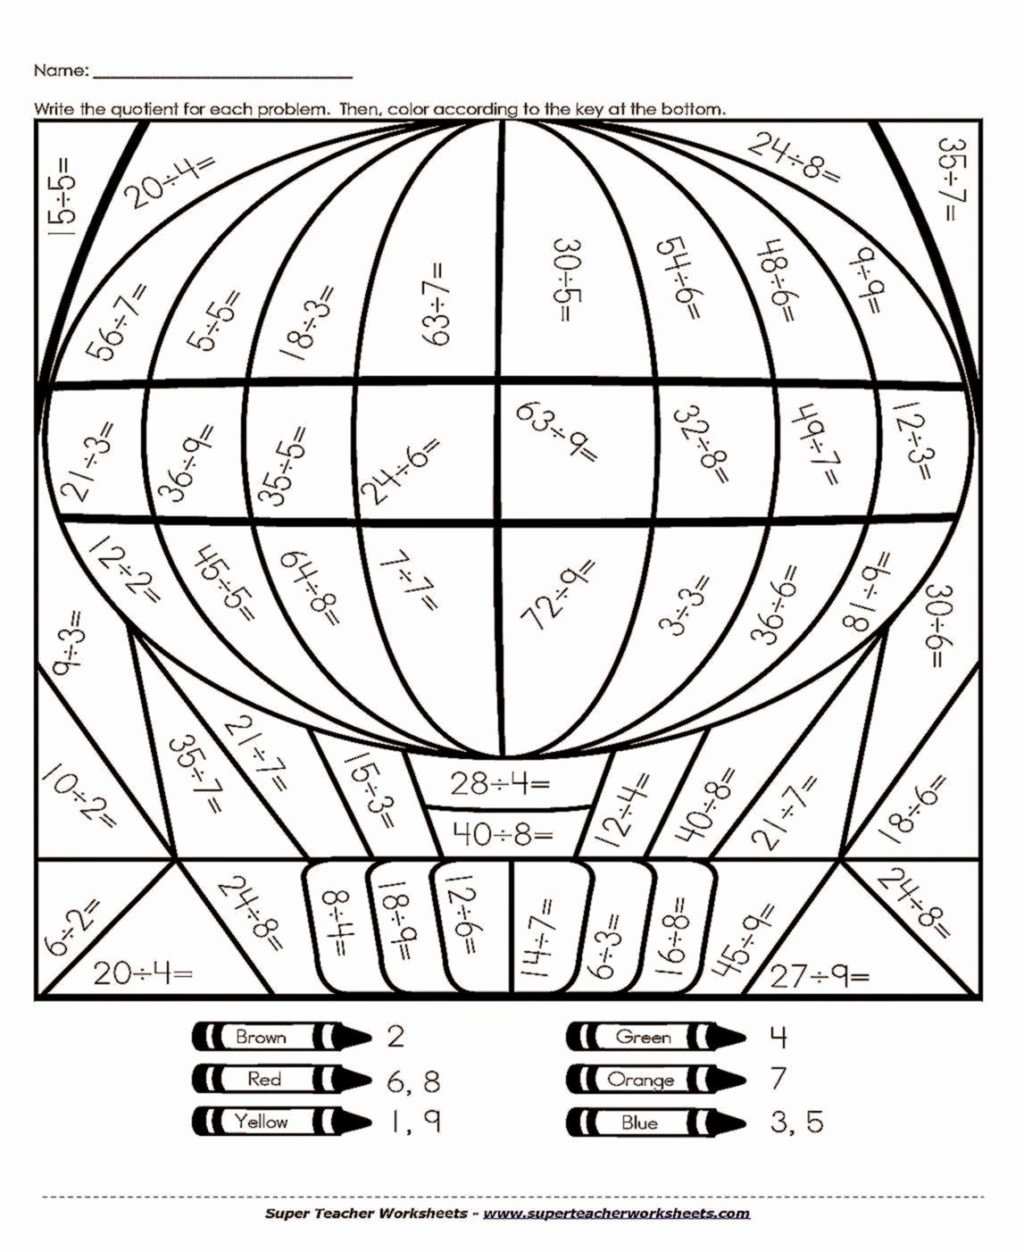 Middle School Math Puzzles Printable Inspirational Worksheet Math Coloring Puzzles Fabulous Picture